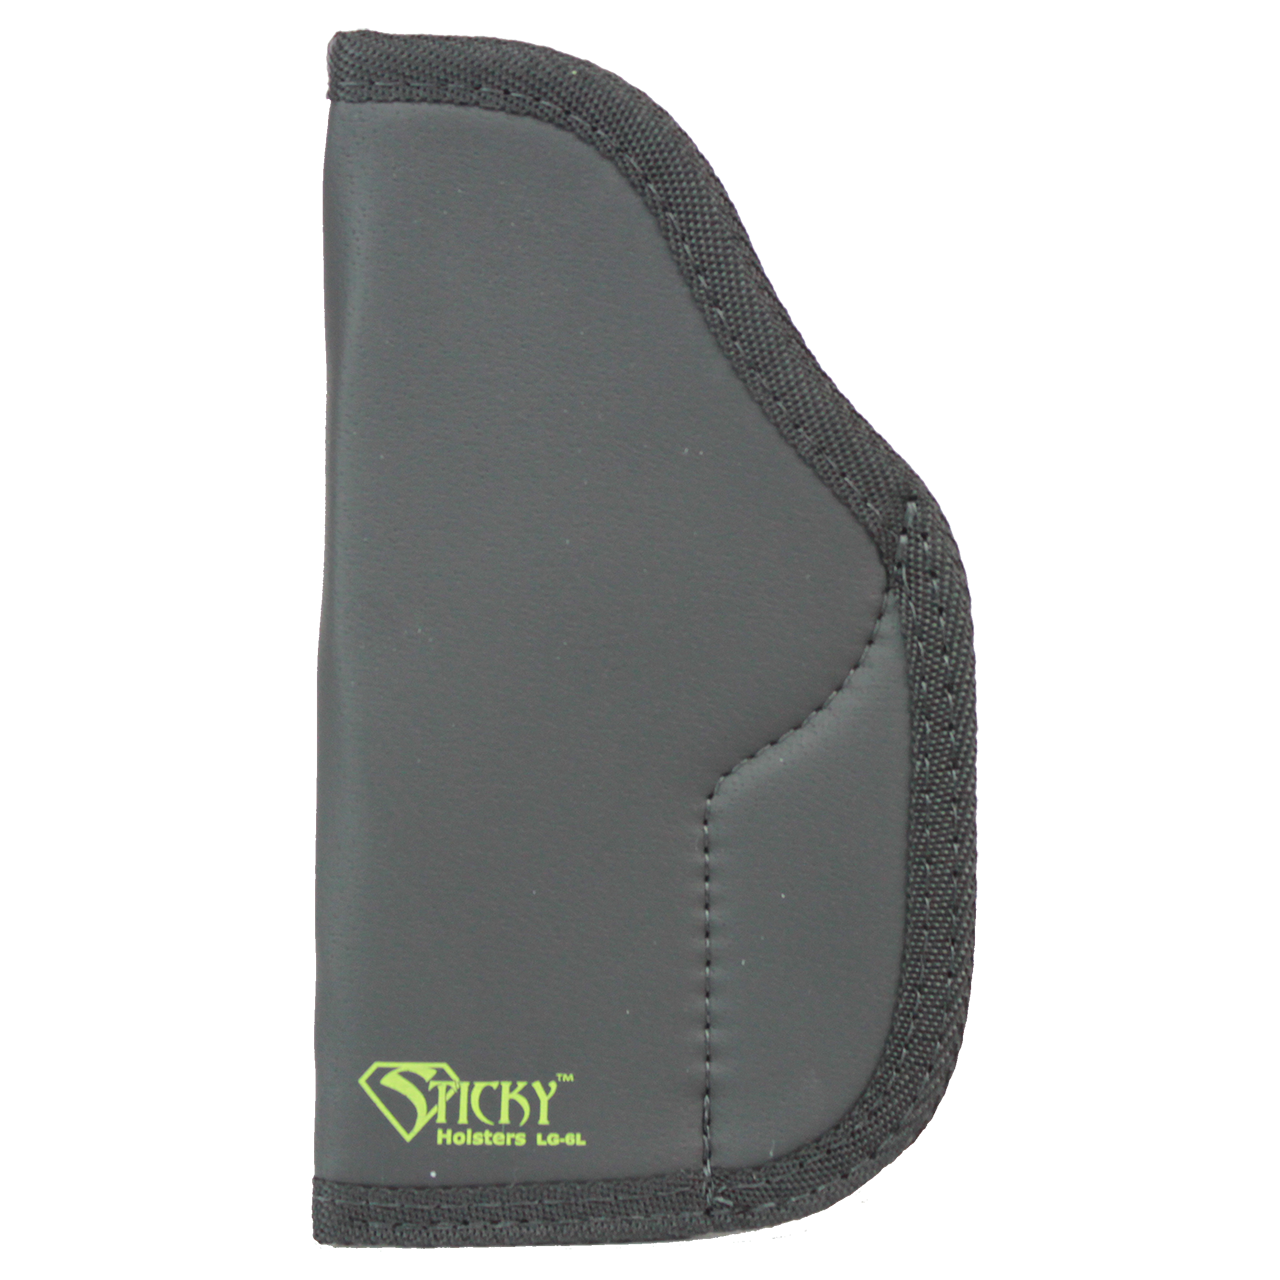 lg-6-long-large-sticky-holster